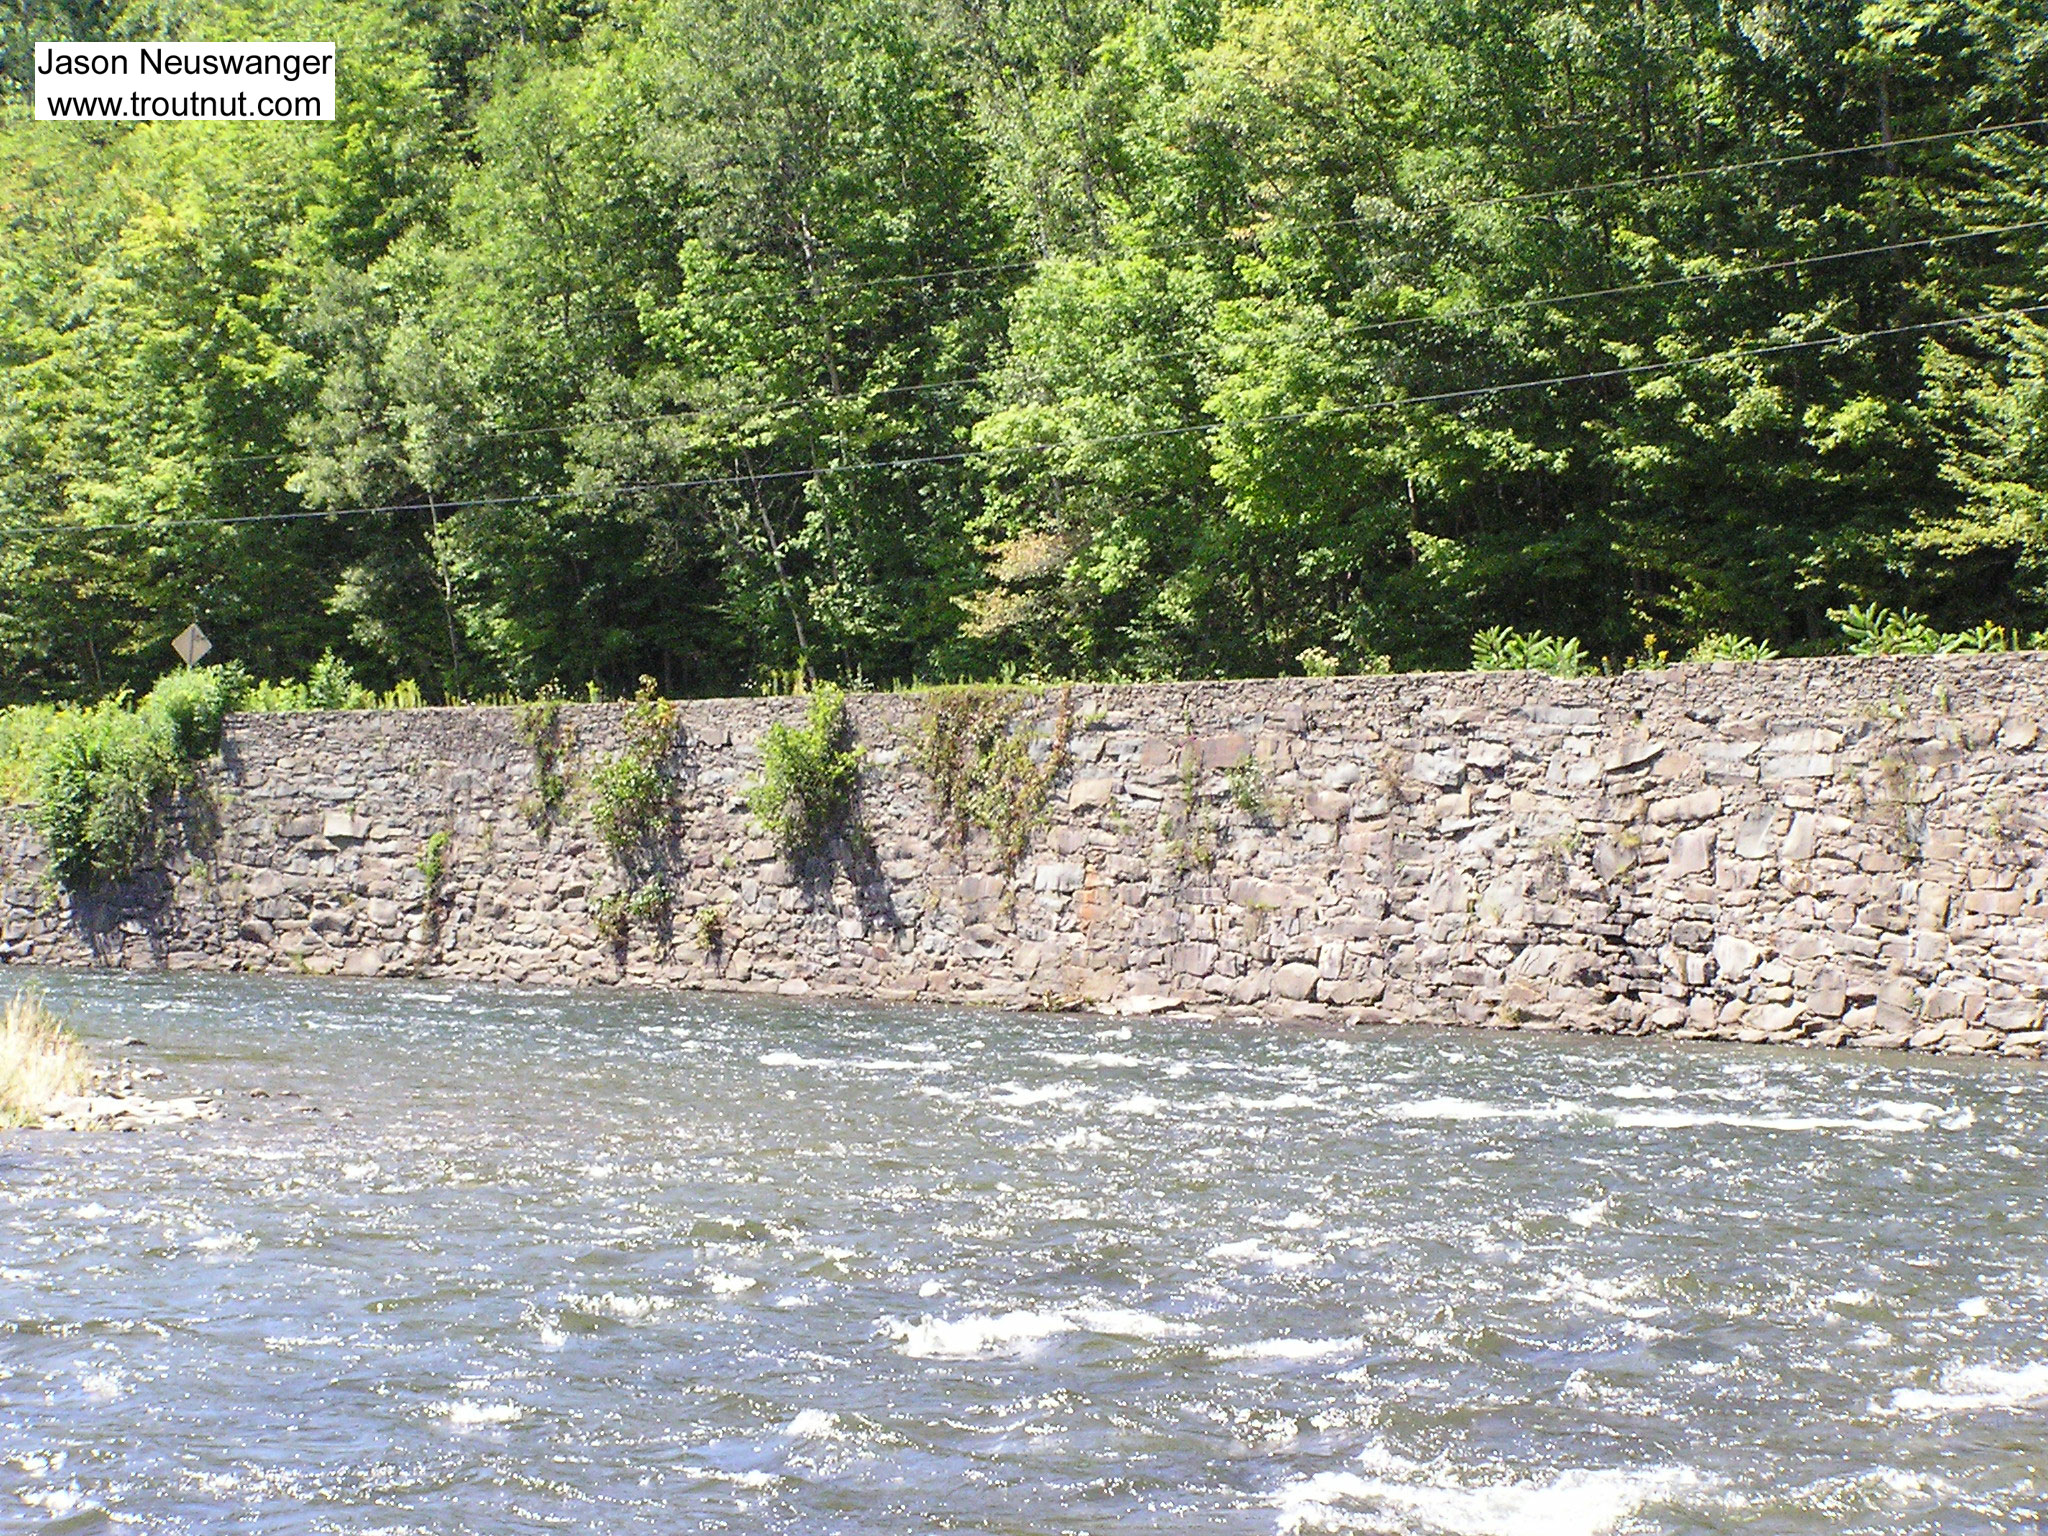 A beautiful deep current tongue runs along a manmade wall on a famous Catskill river. From the Beaverkill River in New York.